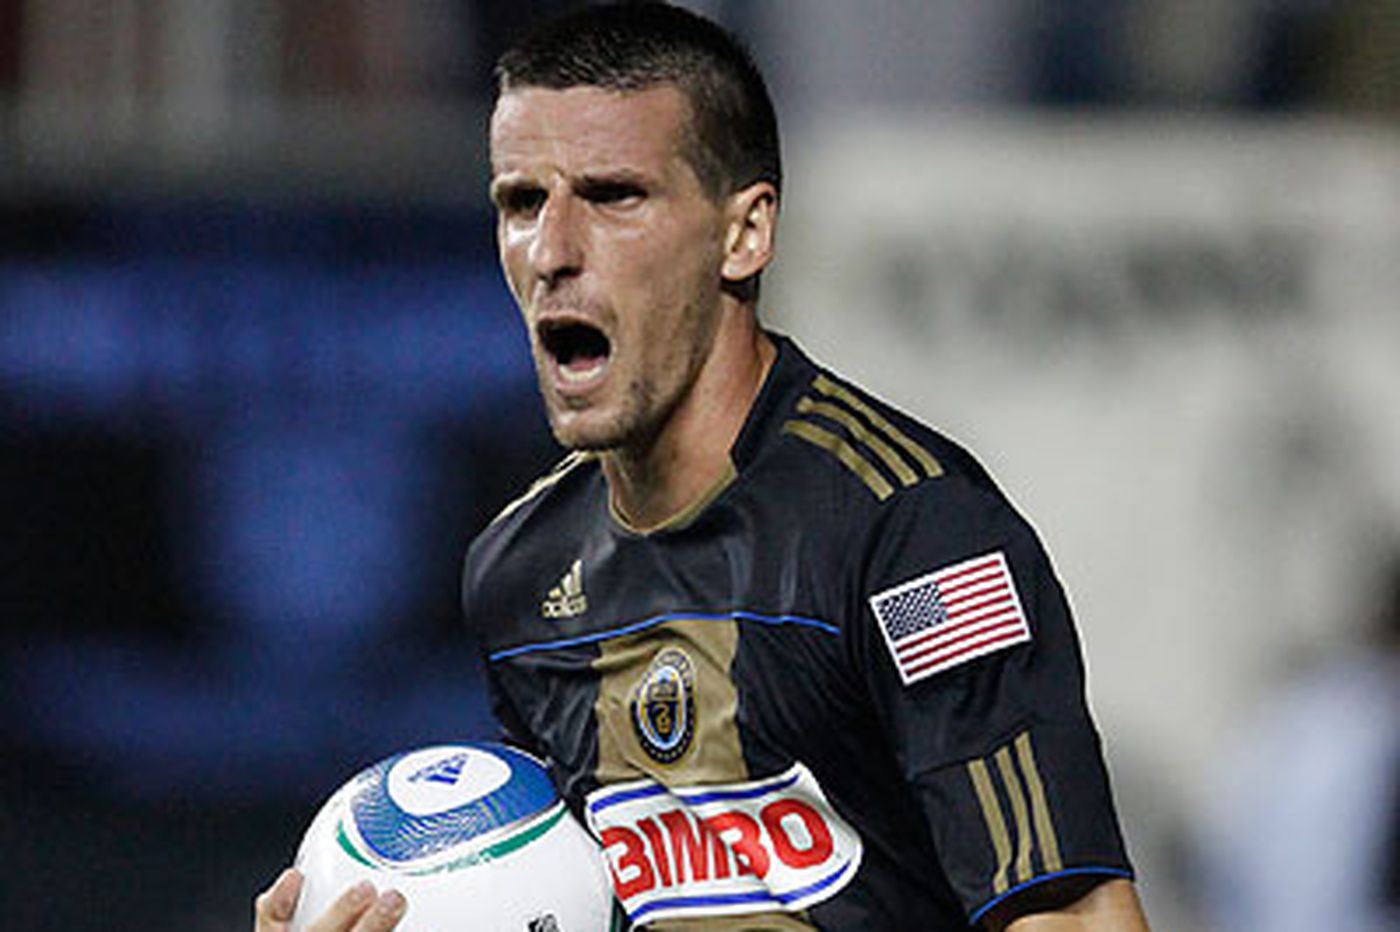 Le Toux may be headed to England